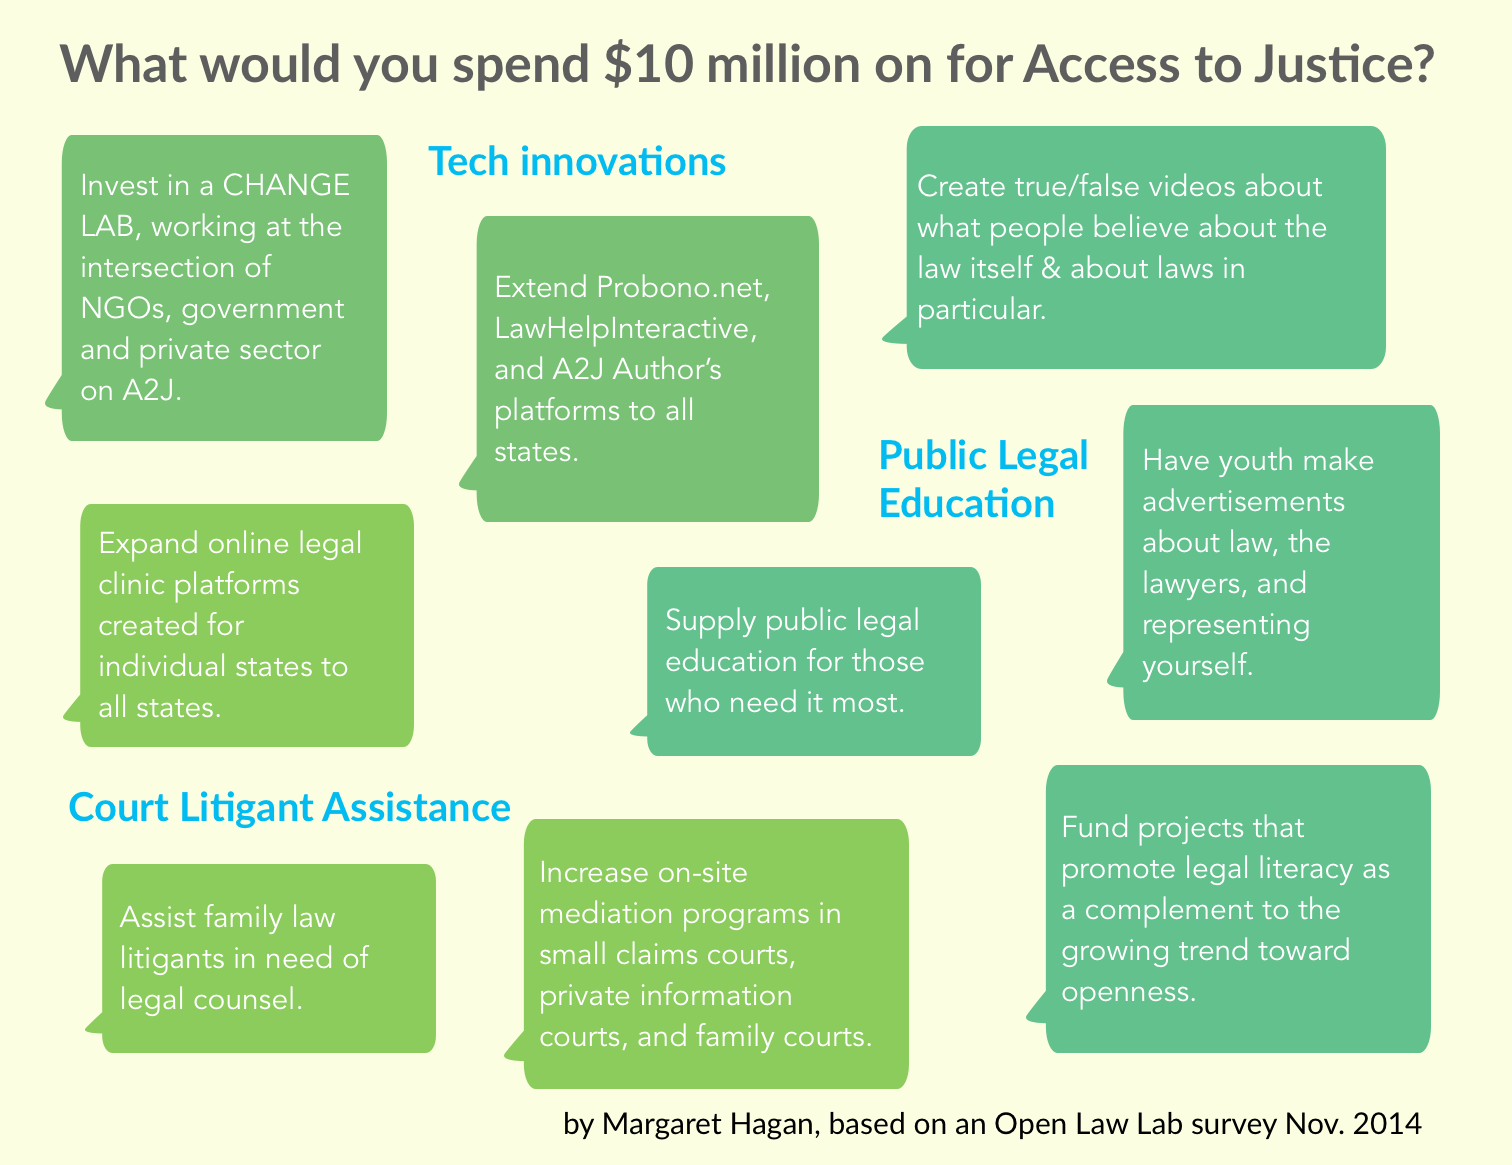 Access to Justice - where would you spend 10 million